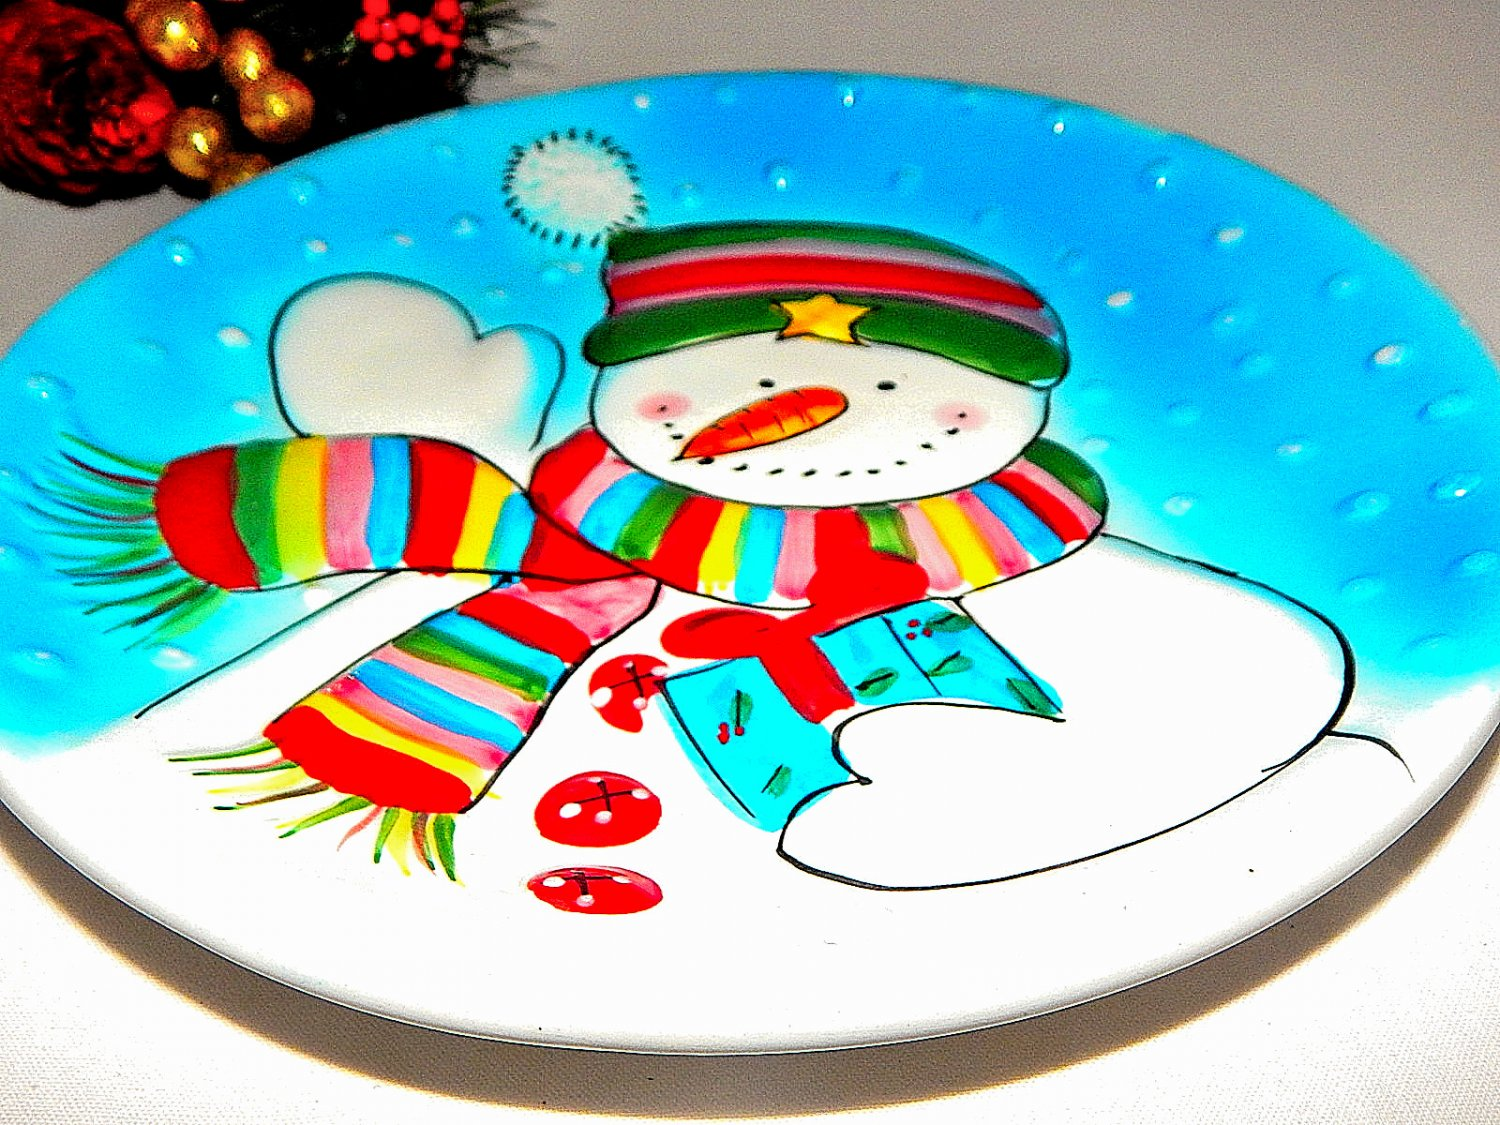 Blue and White Snowman Dessert Serving Plate Christmas Wall Hanging